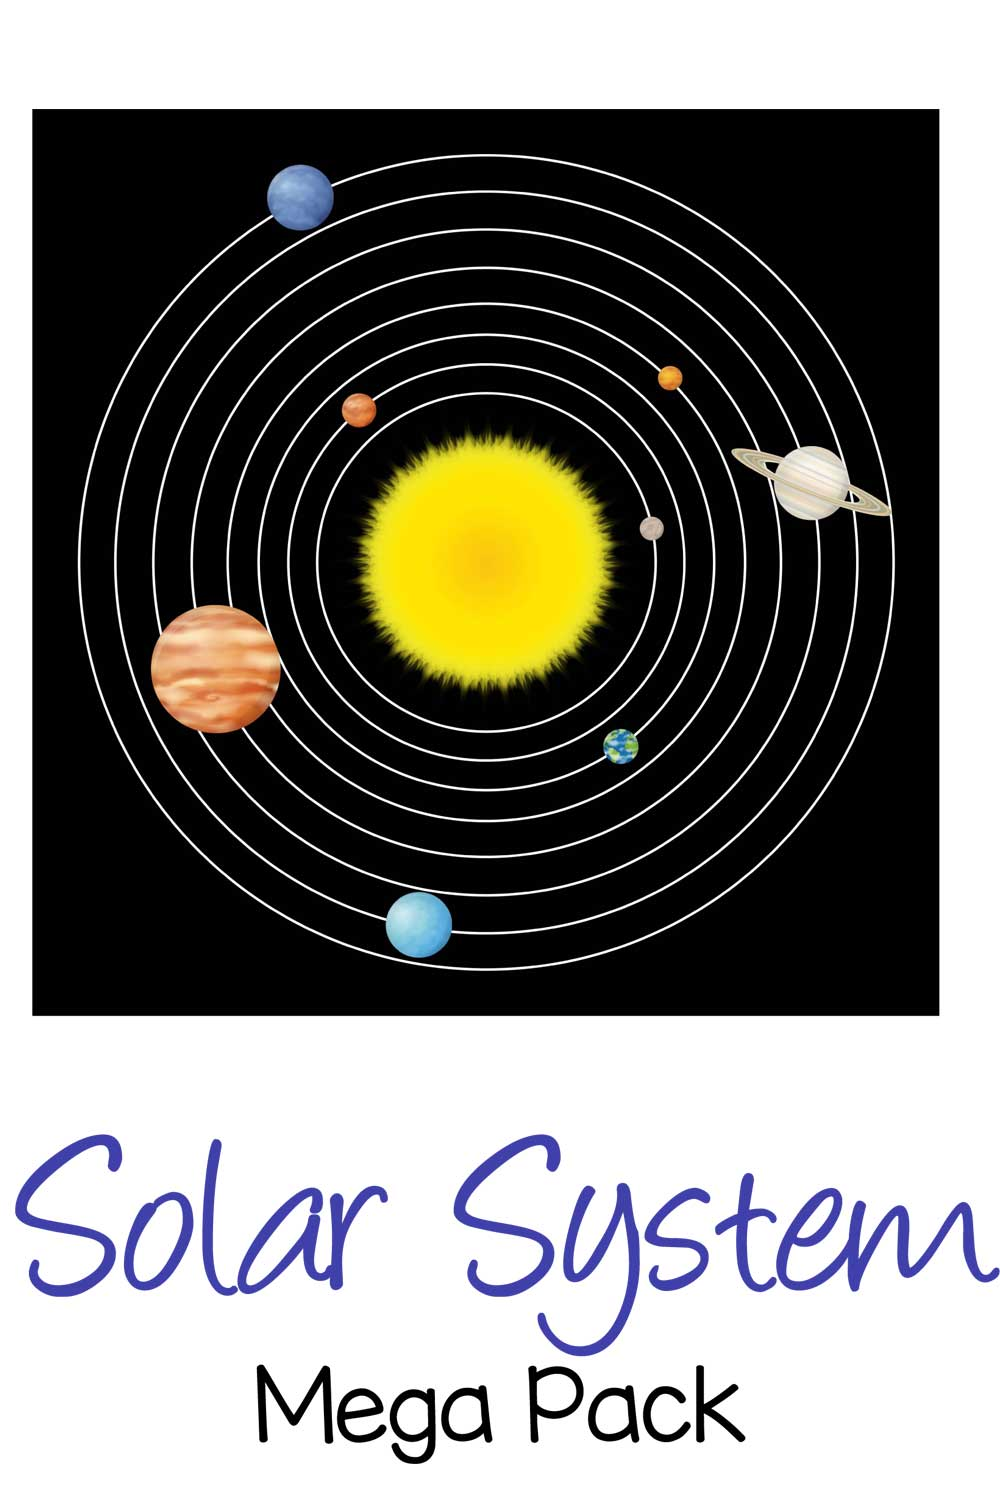 Enjoy this solar system mega pack that includes math activities and word work activities